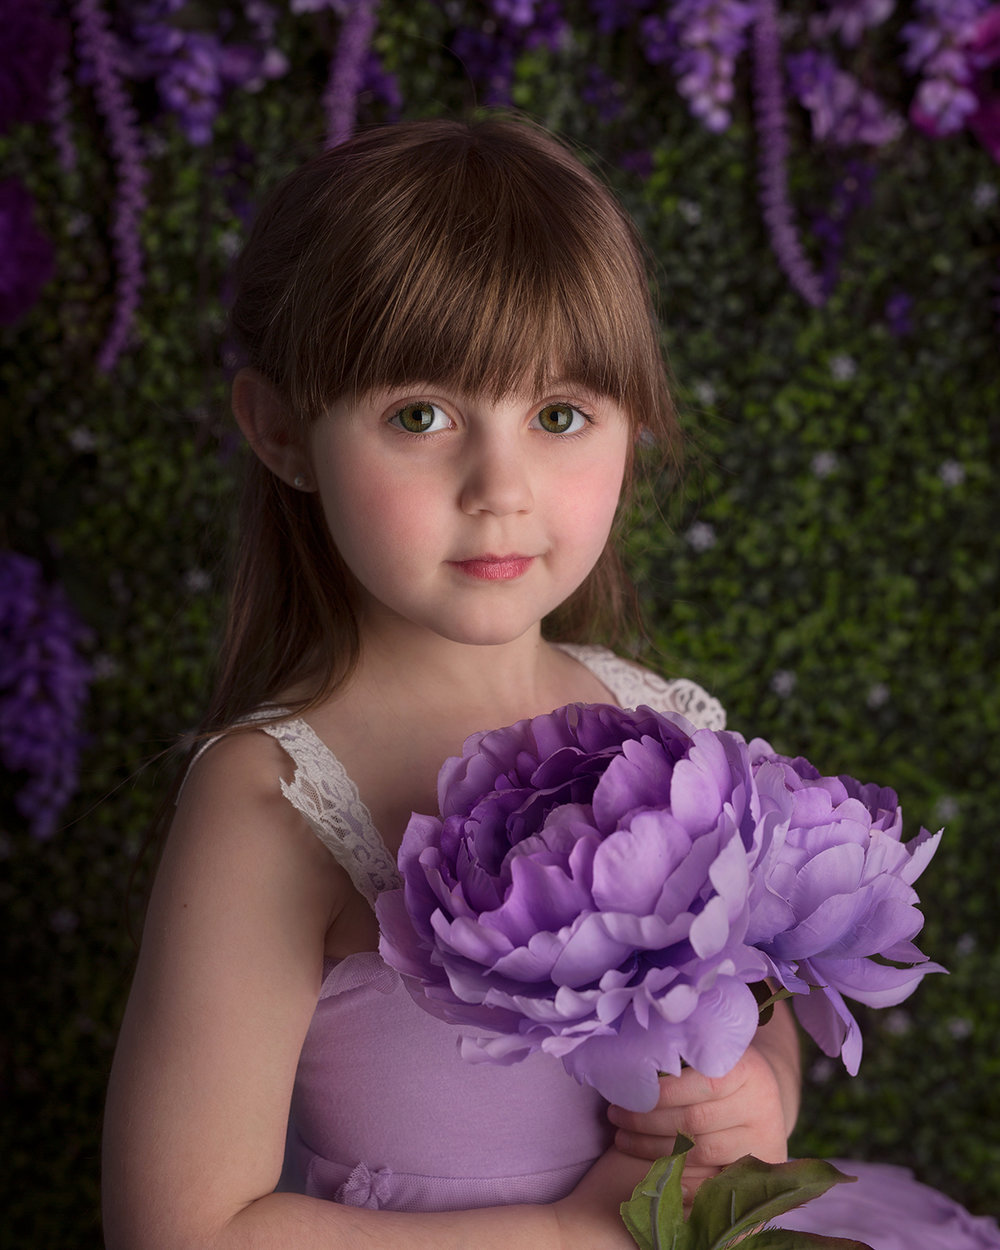 nora with purple flowers sRGB.jpg